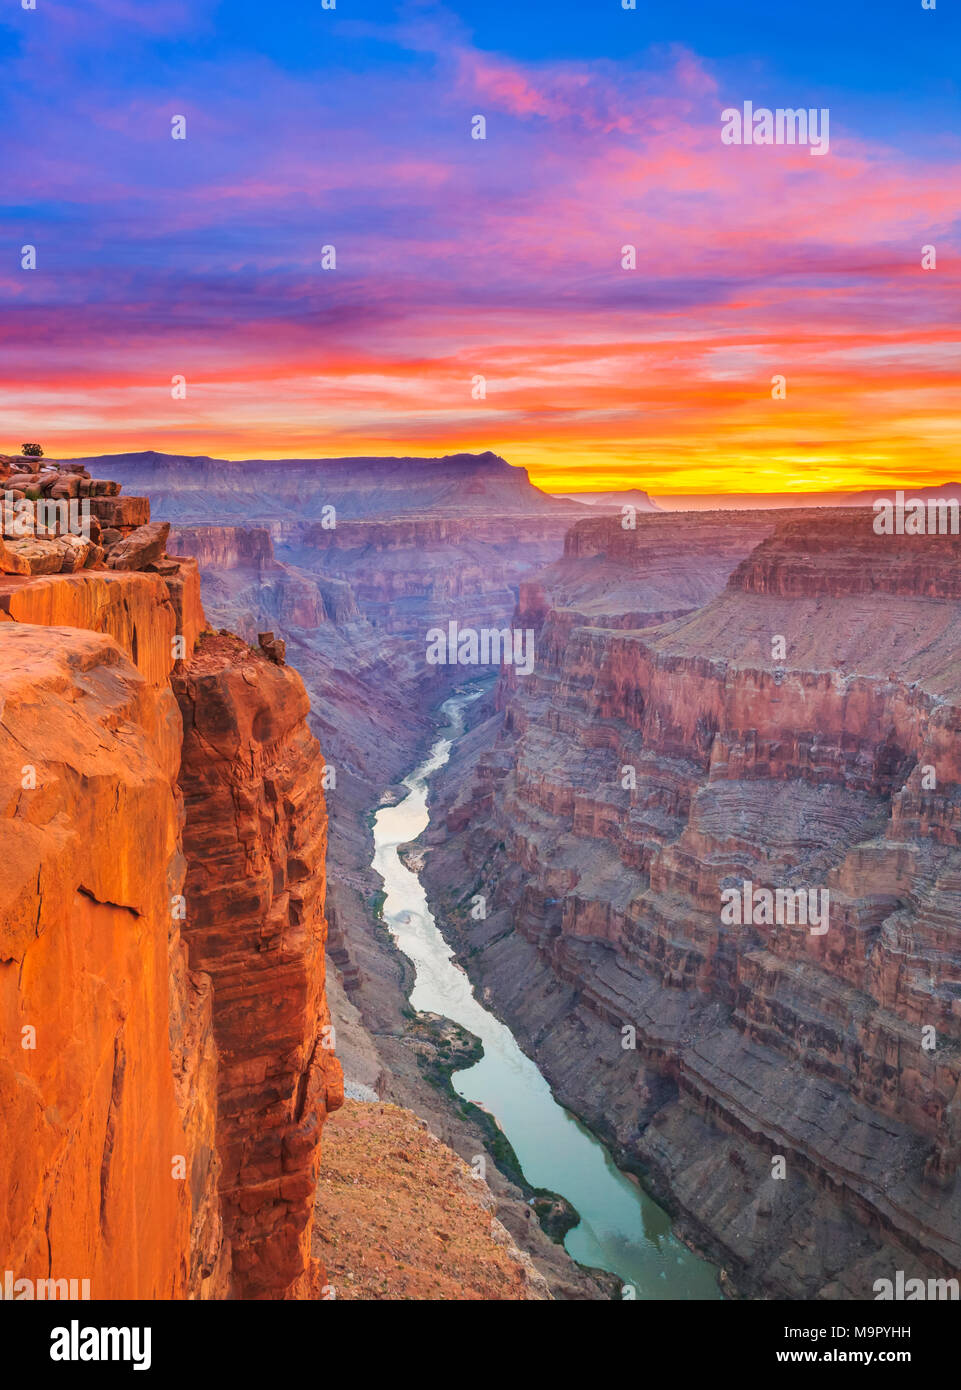 Sonnenaufgang über dem Colorado River im Toroweap Overlook im Grand Canyon National Park, arizona Stockbild